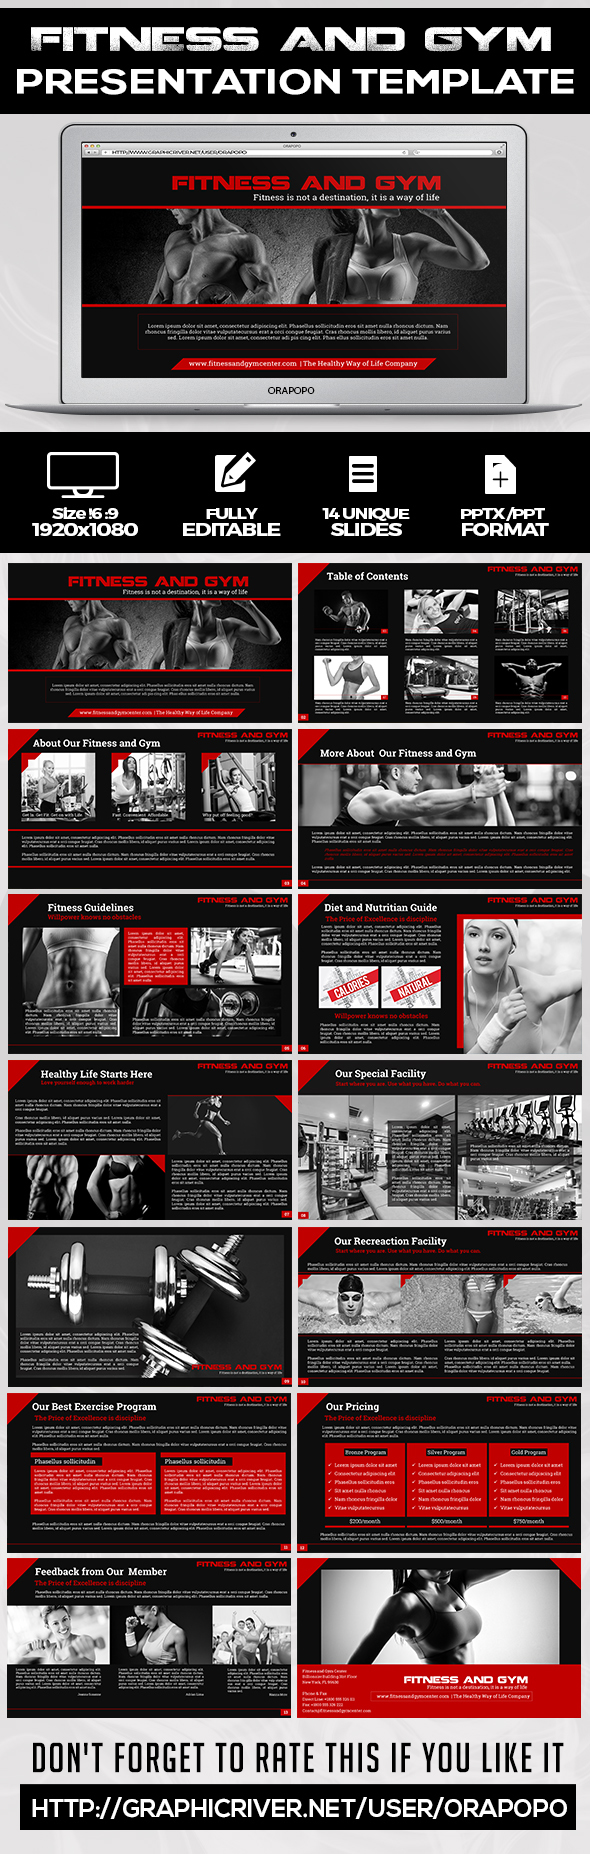 Fitness and Gym Presentation Template - Creative PowerPoint Templates